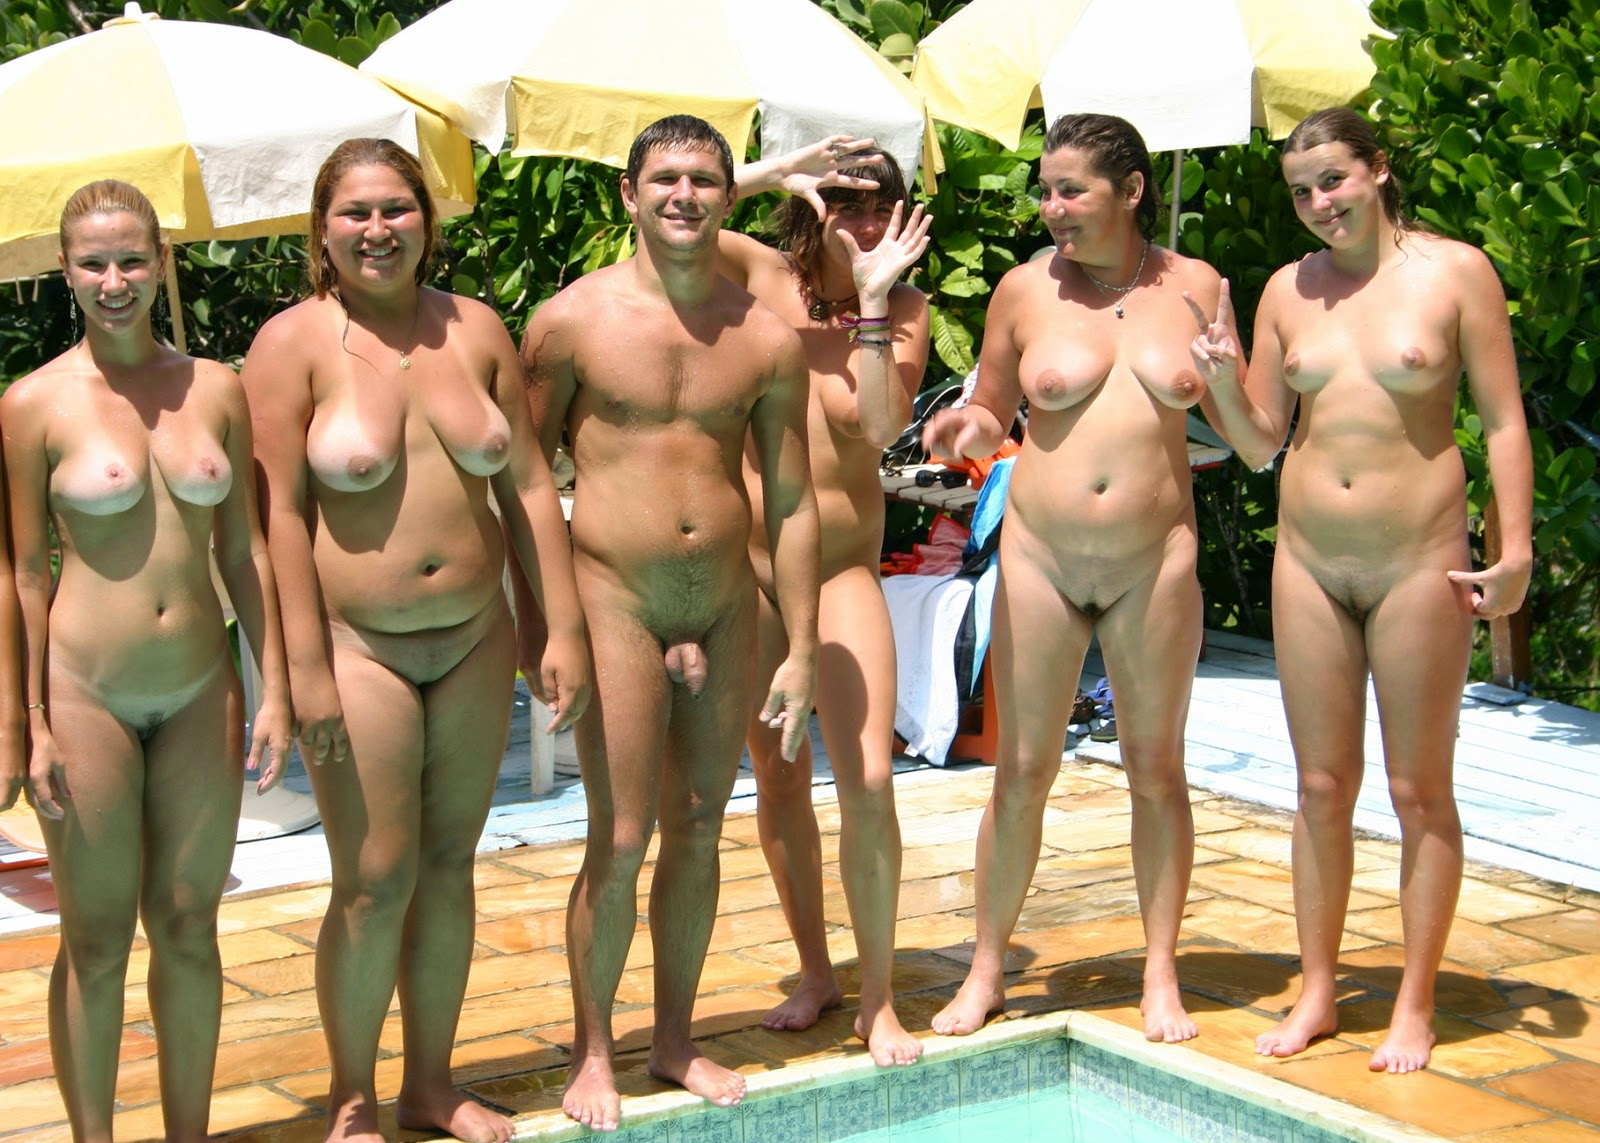 pure nudism hd